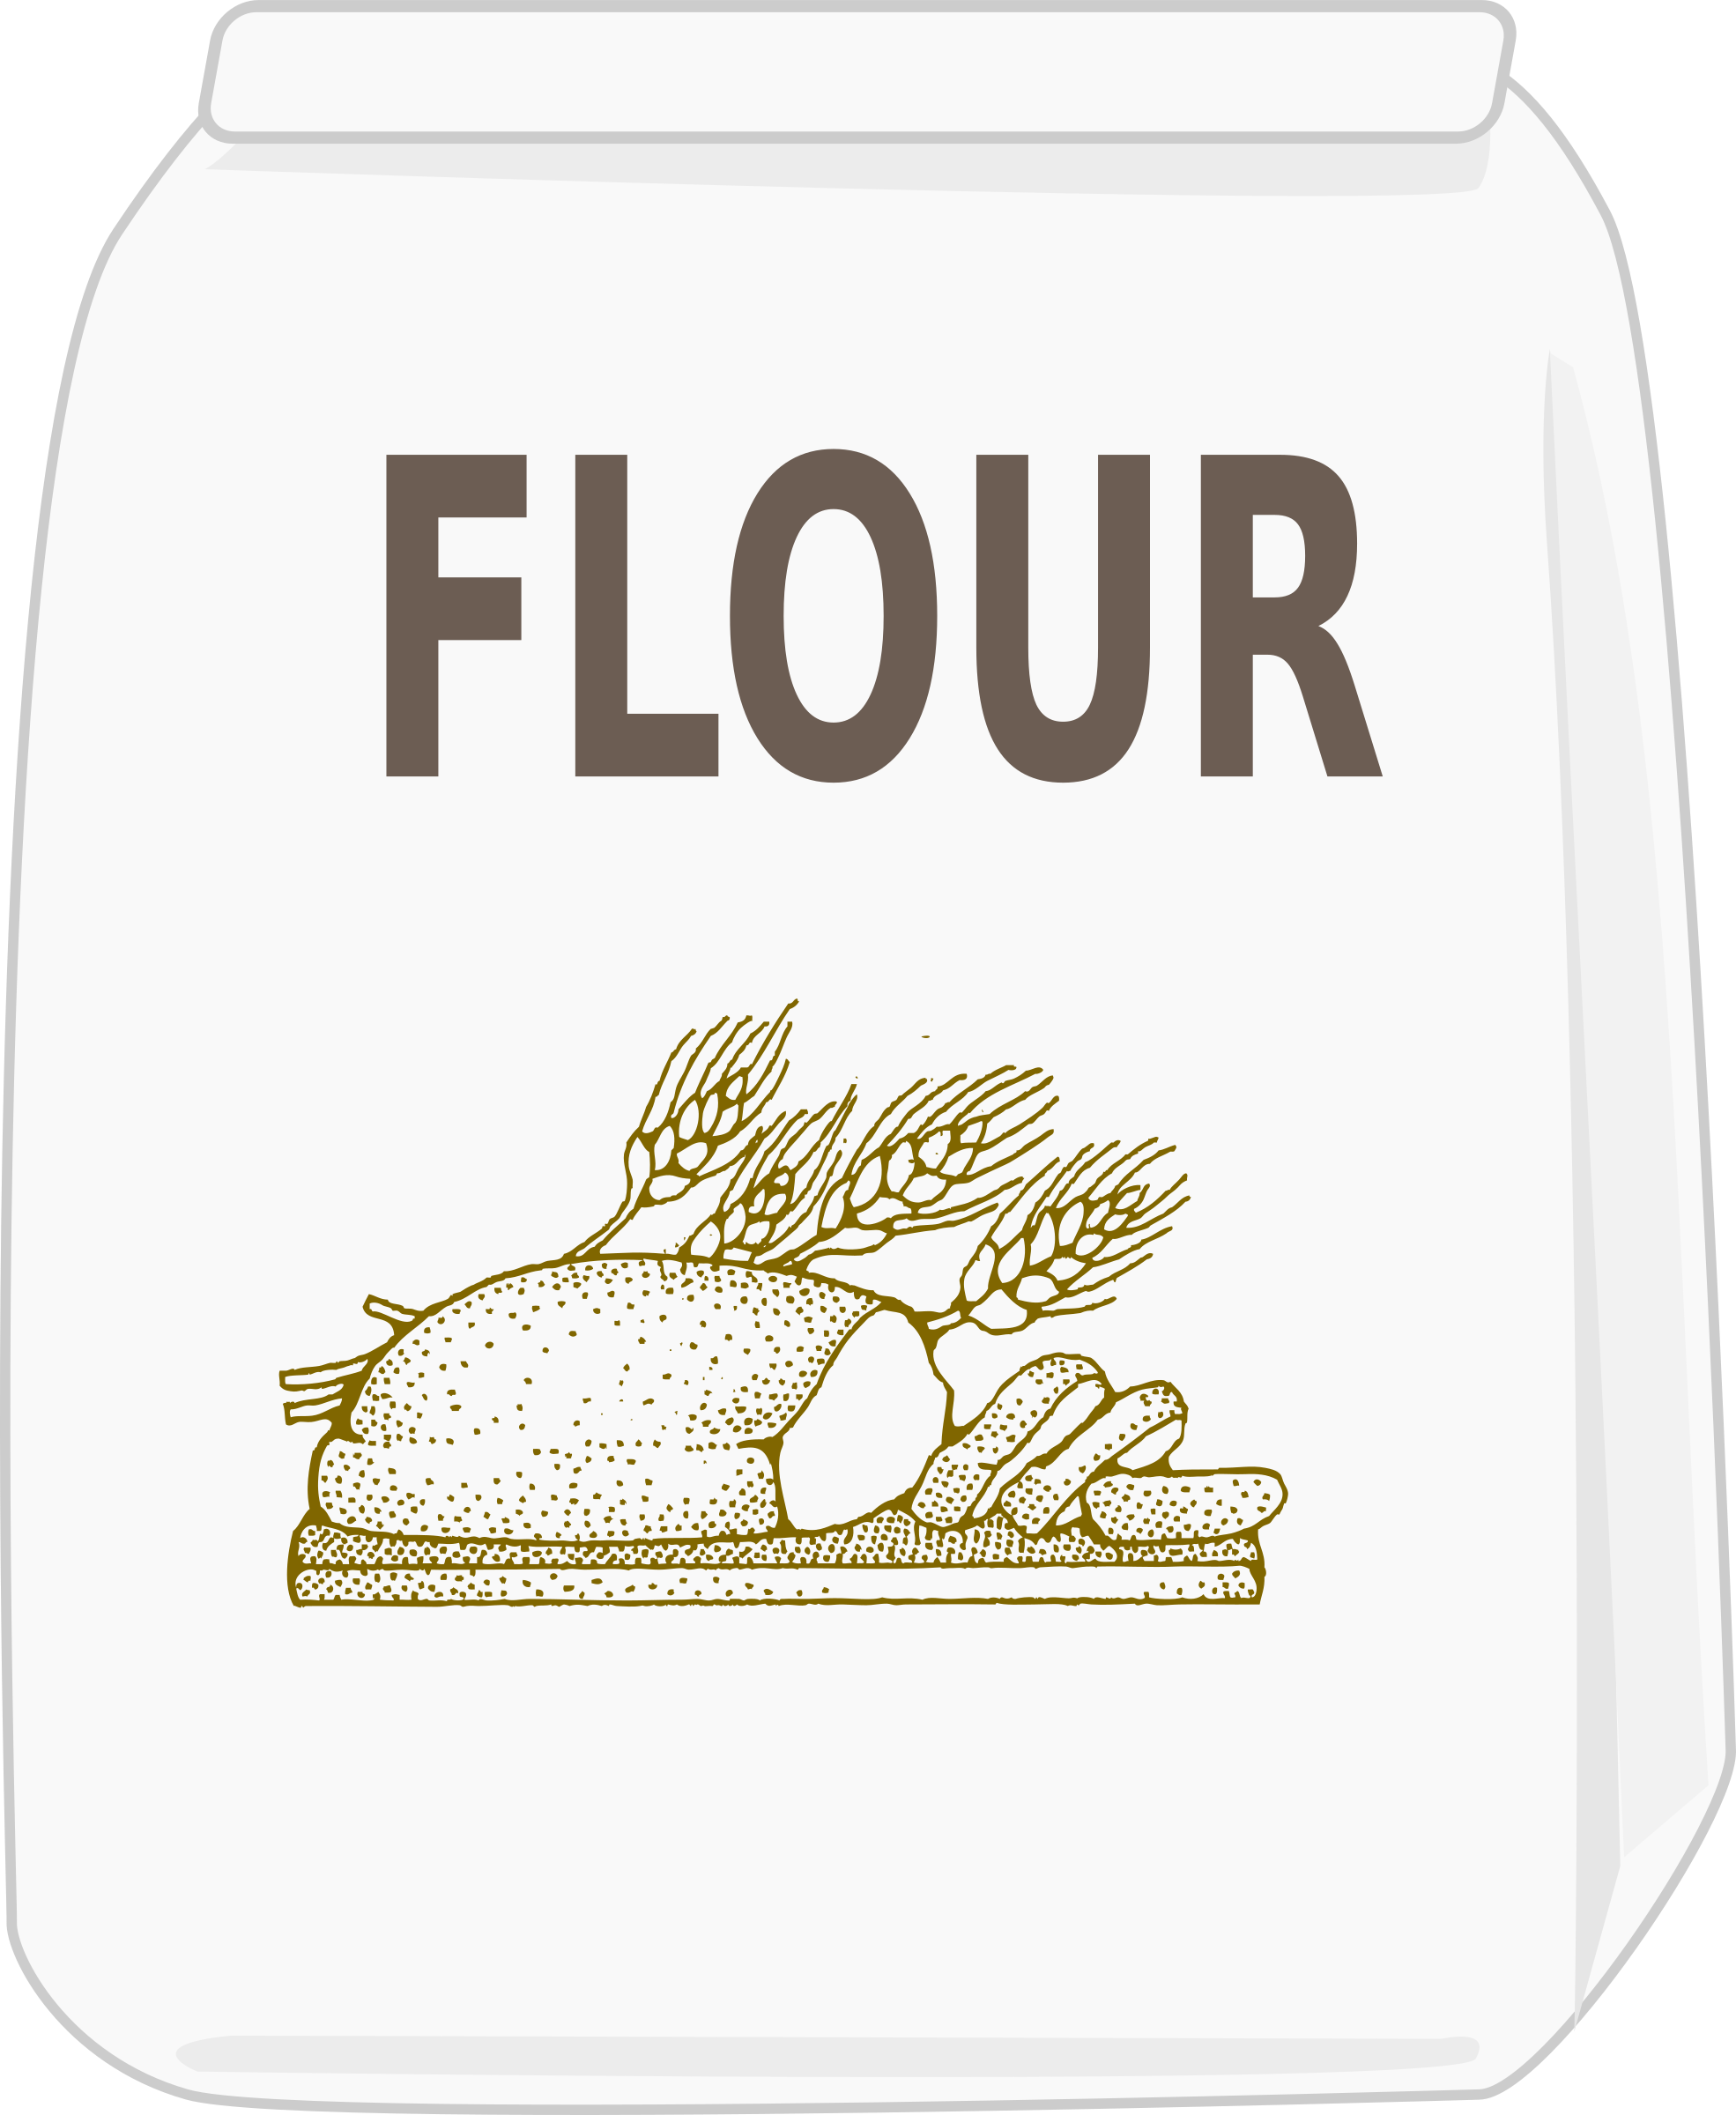 Flour clipart free download clip art on 5